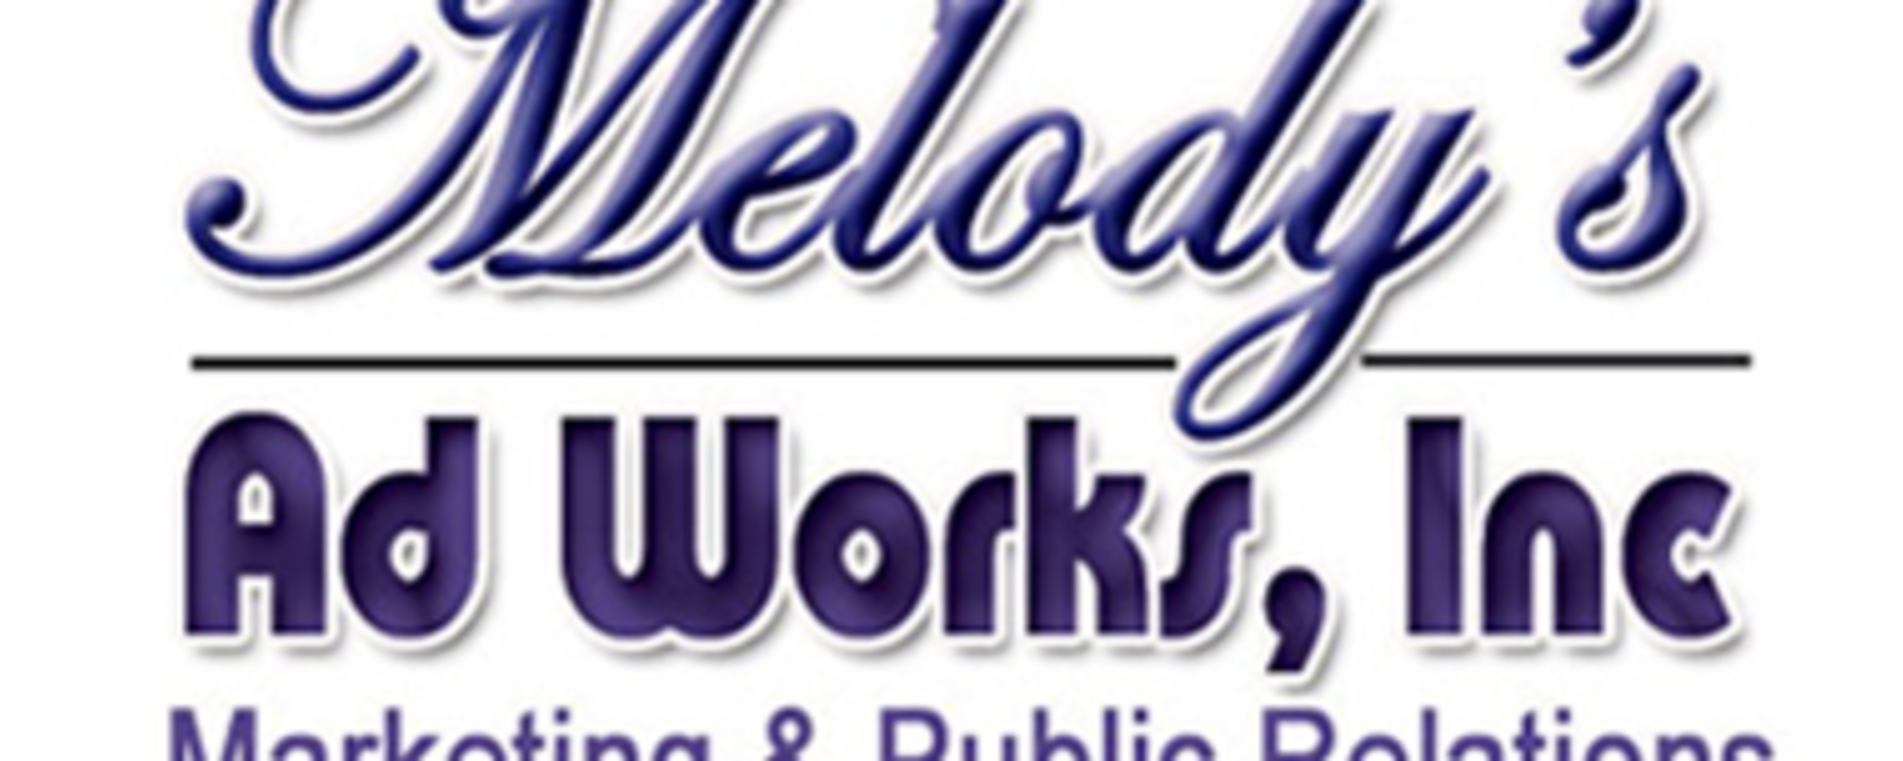 Melody's Ad Works - Temecula